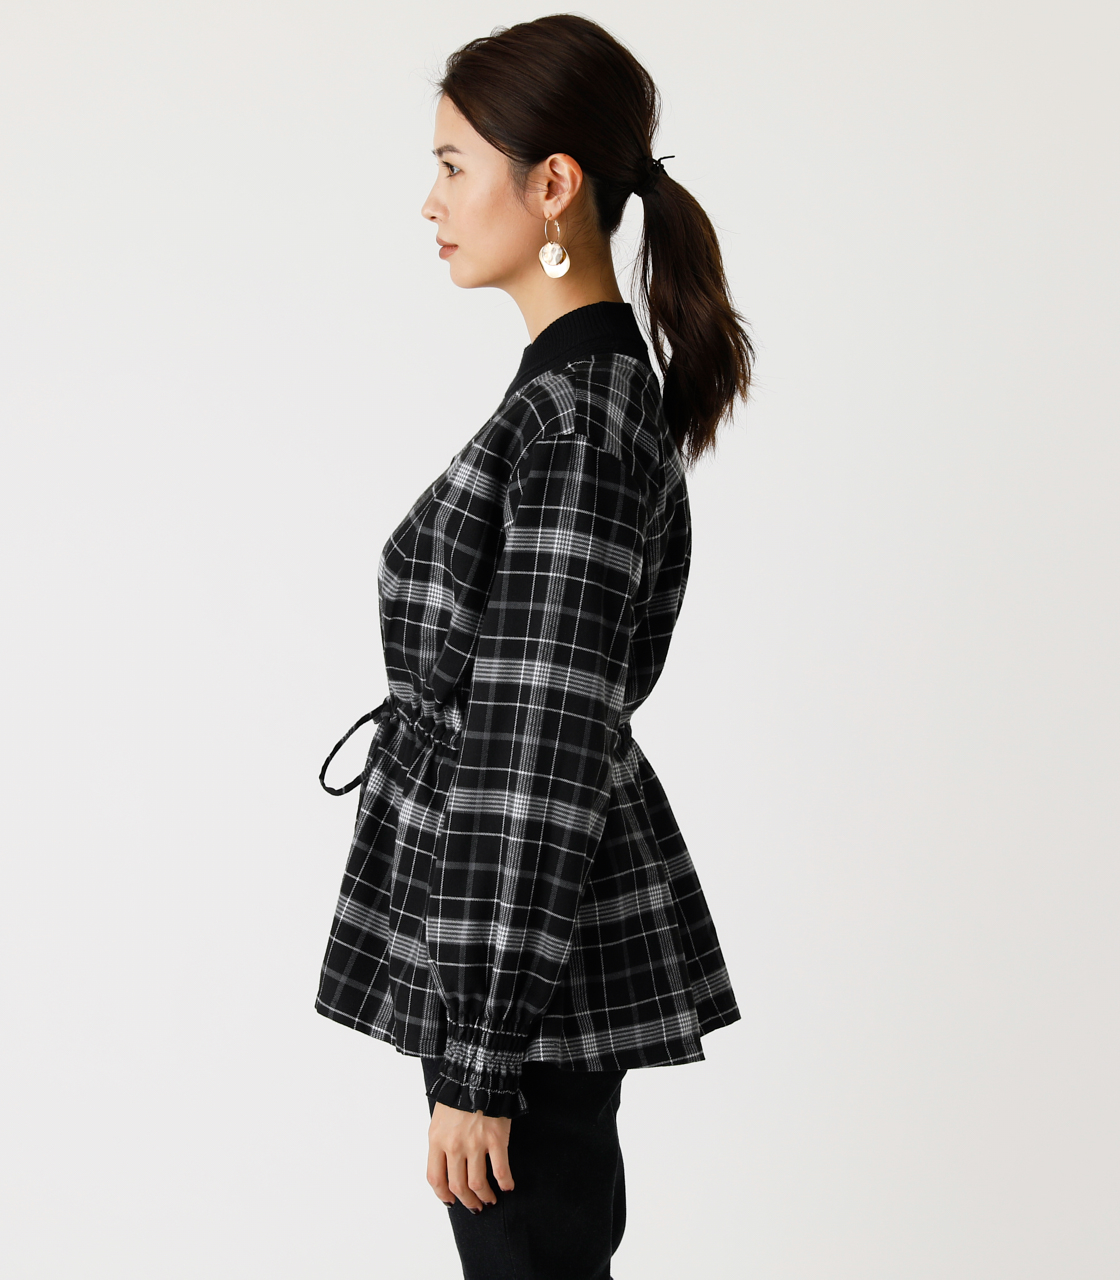 PEPLUM CHECK BLOUSE/ペプラムチェックブラウス 詳細画像 柄BLK 5